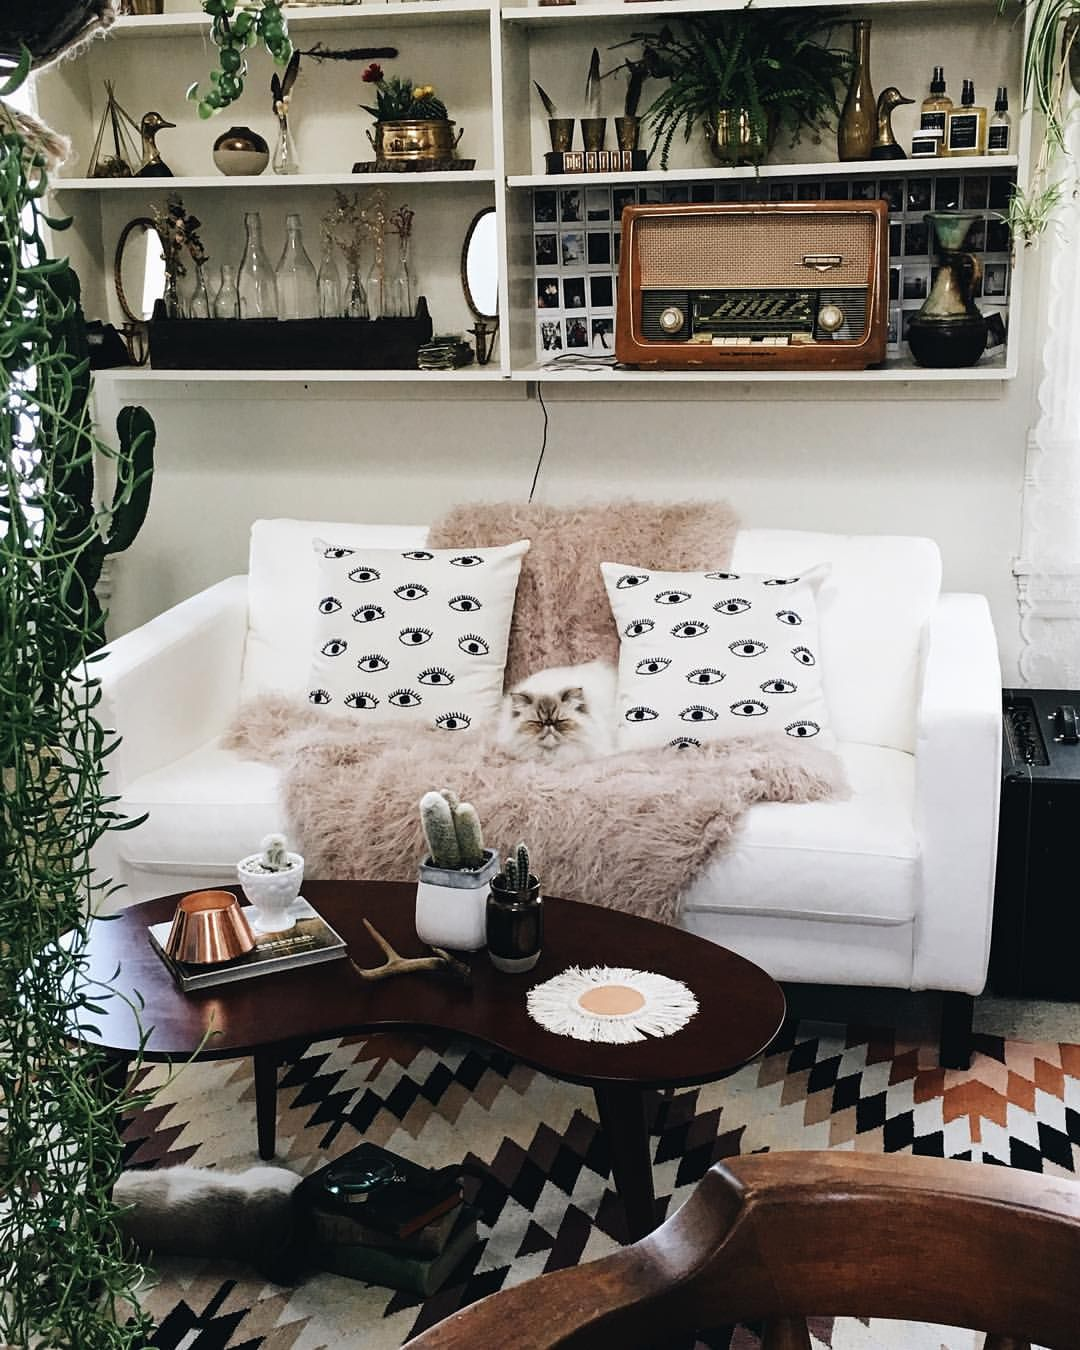 urban outfitters living room ideas simple home interior design tumblr uohome bohemian house